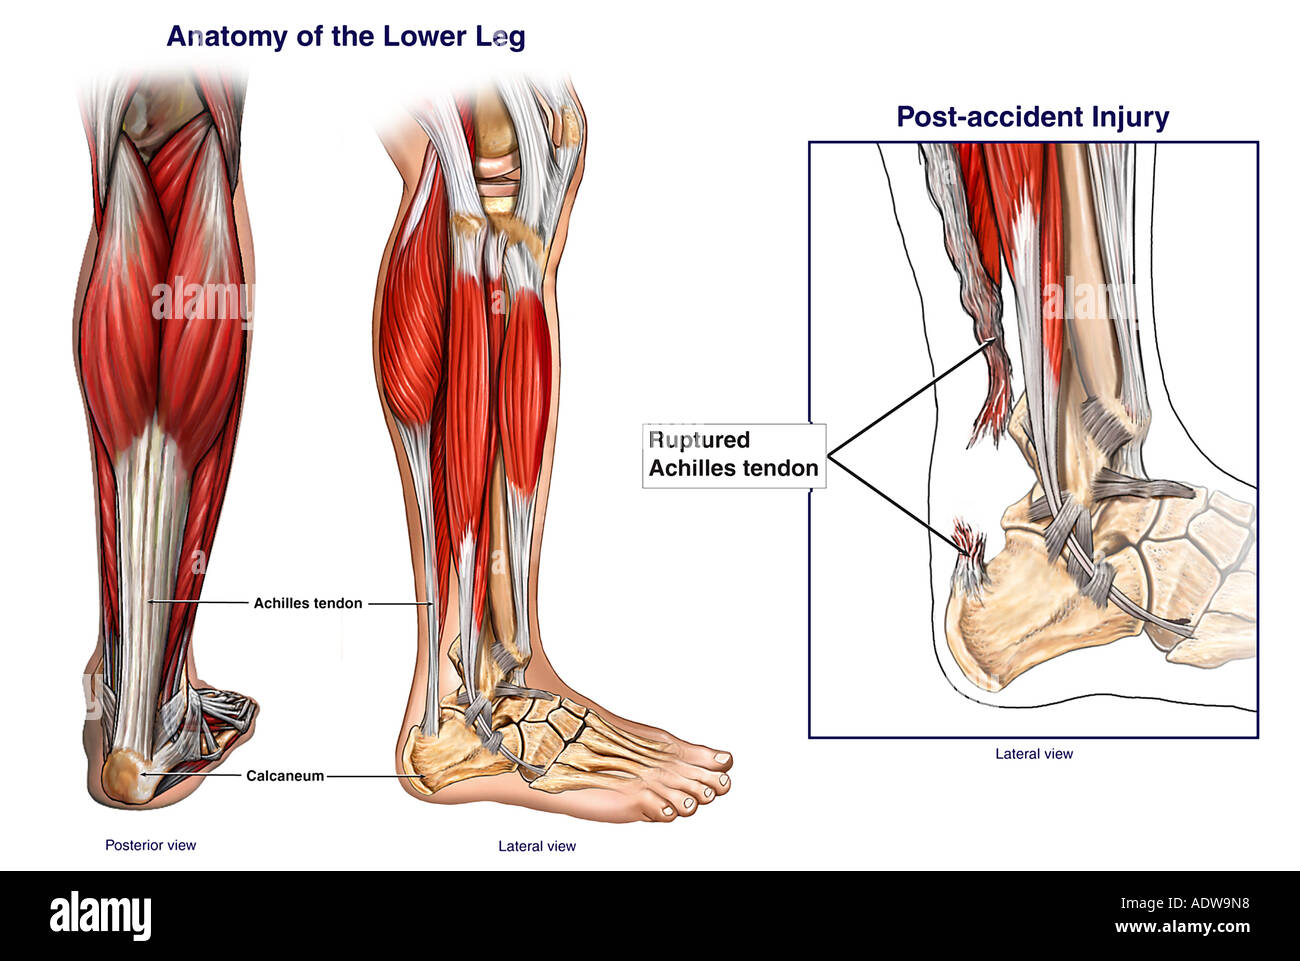 Normal Anatomy Of The Lower Leg Stock Photo